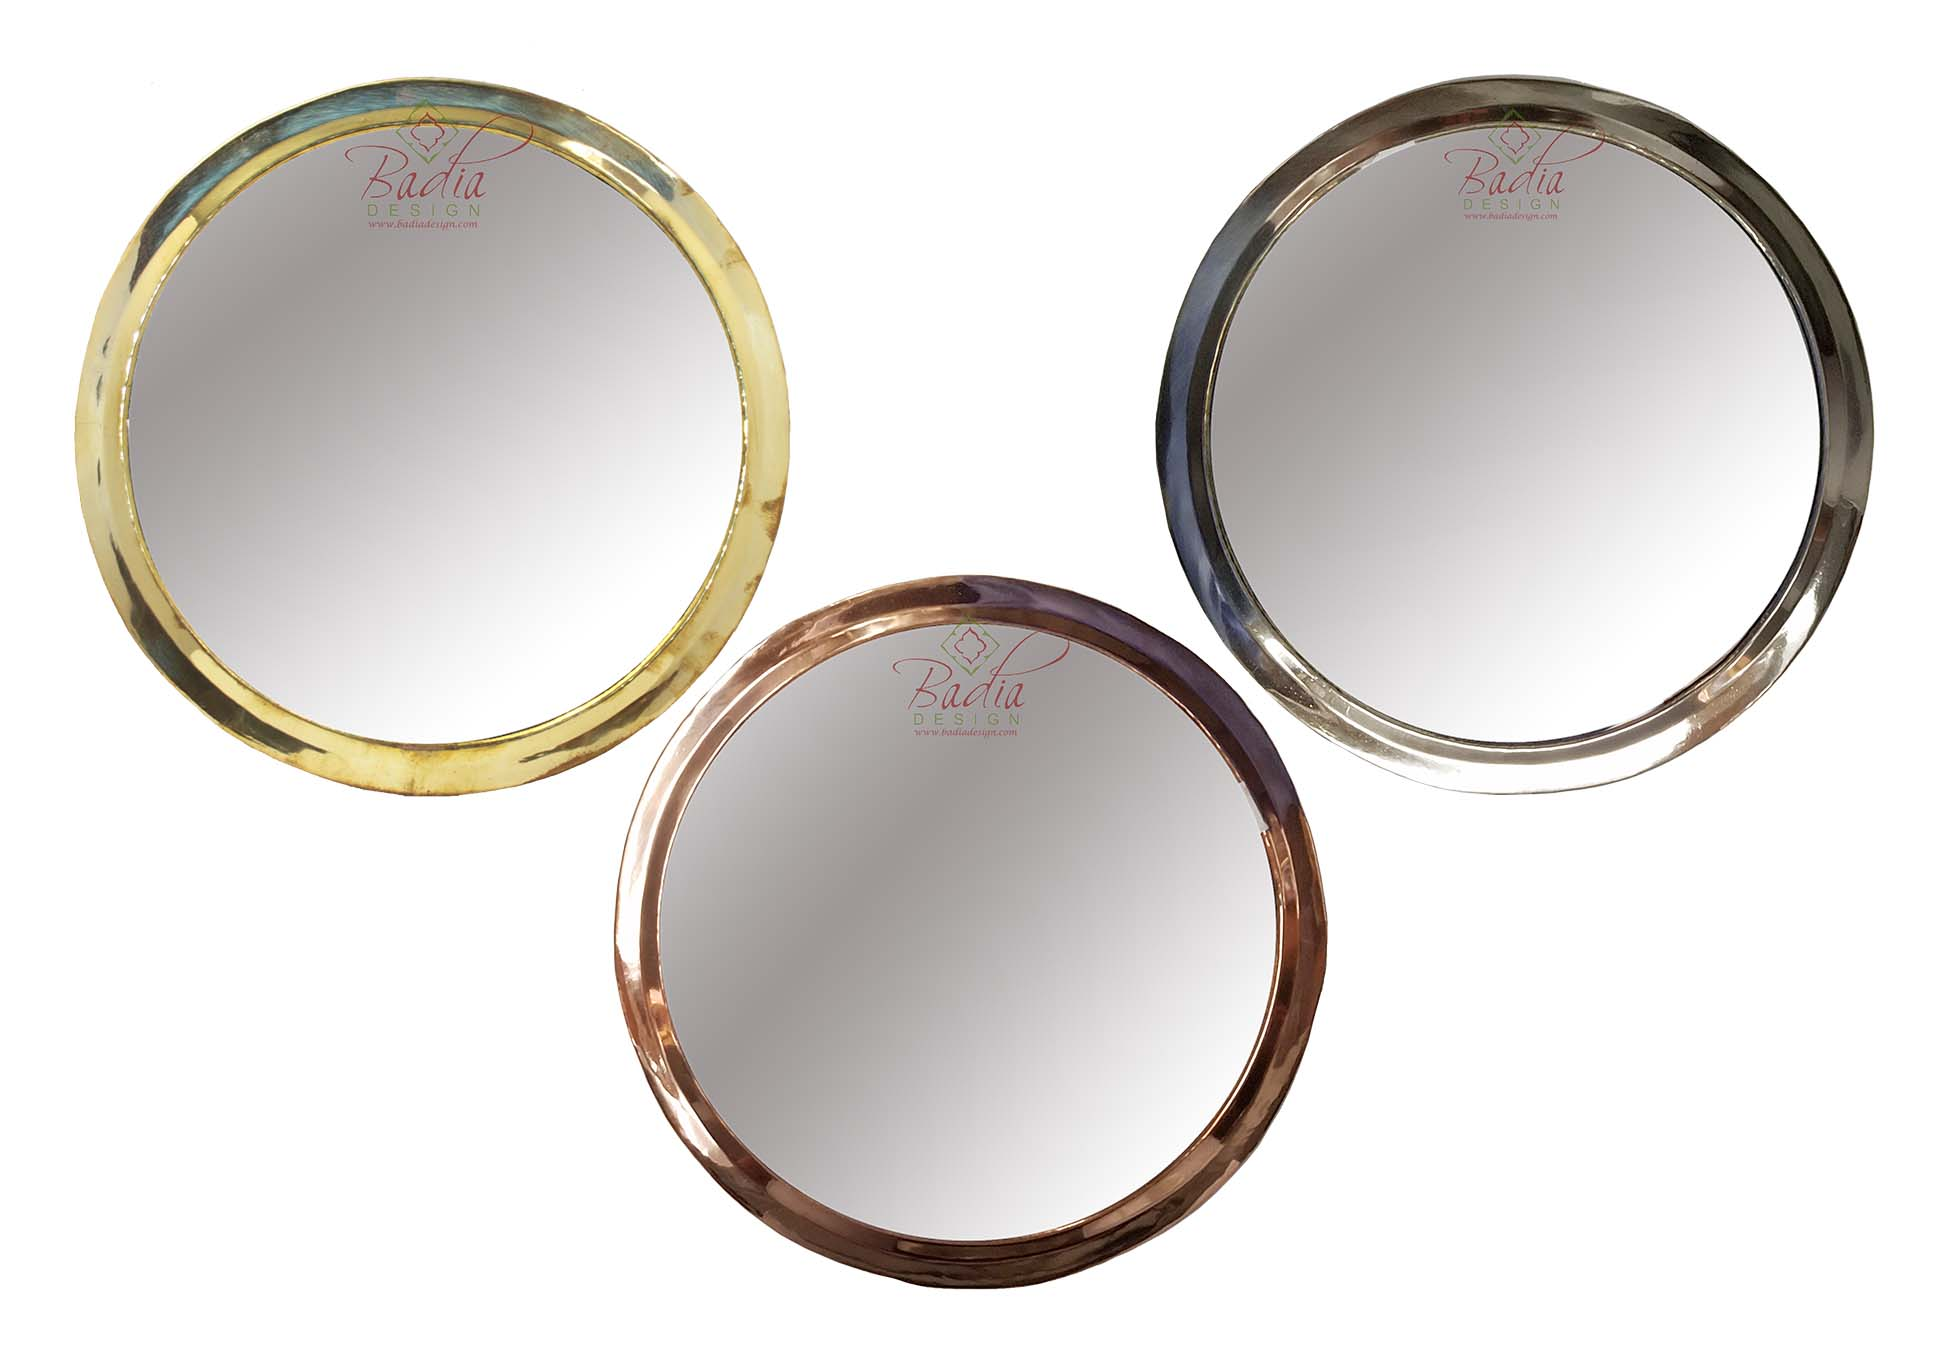 moroccan-round-decorative-mirrors-m-em016.jpg